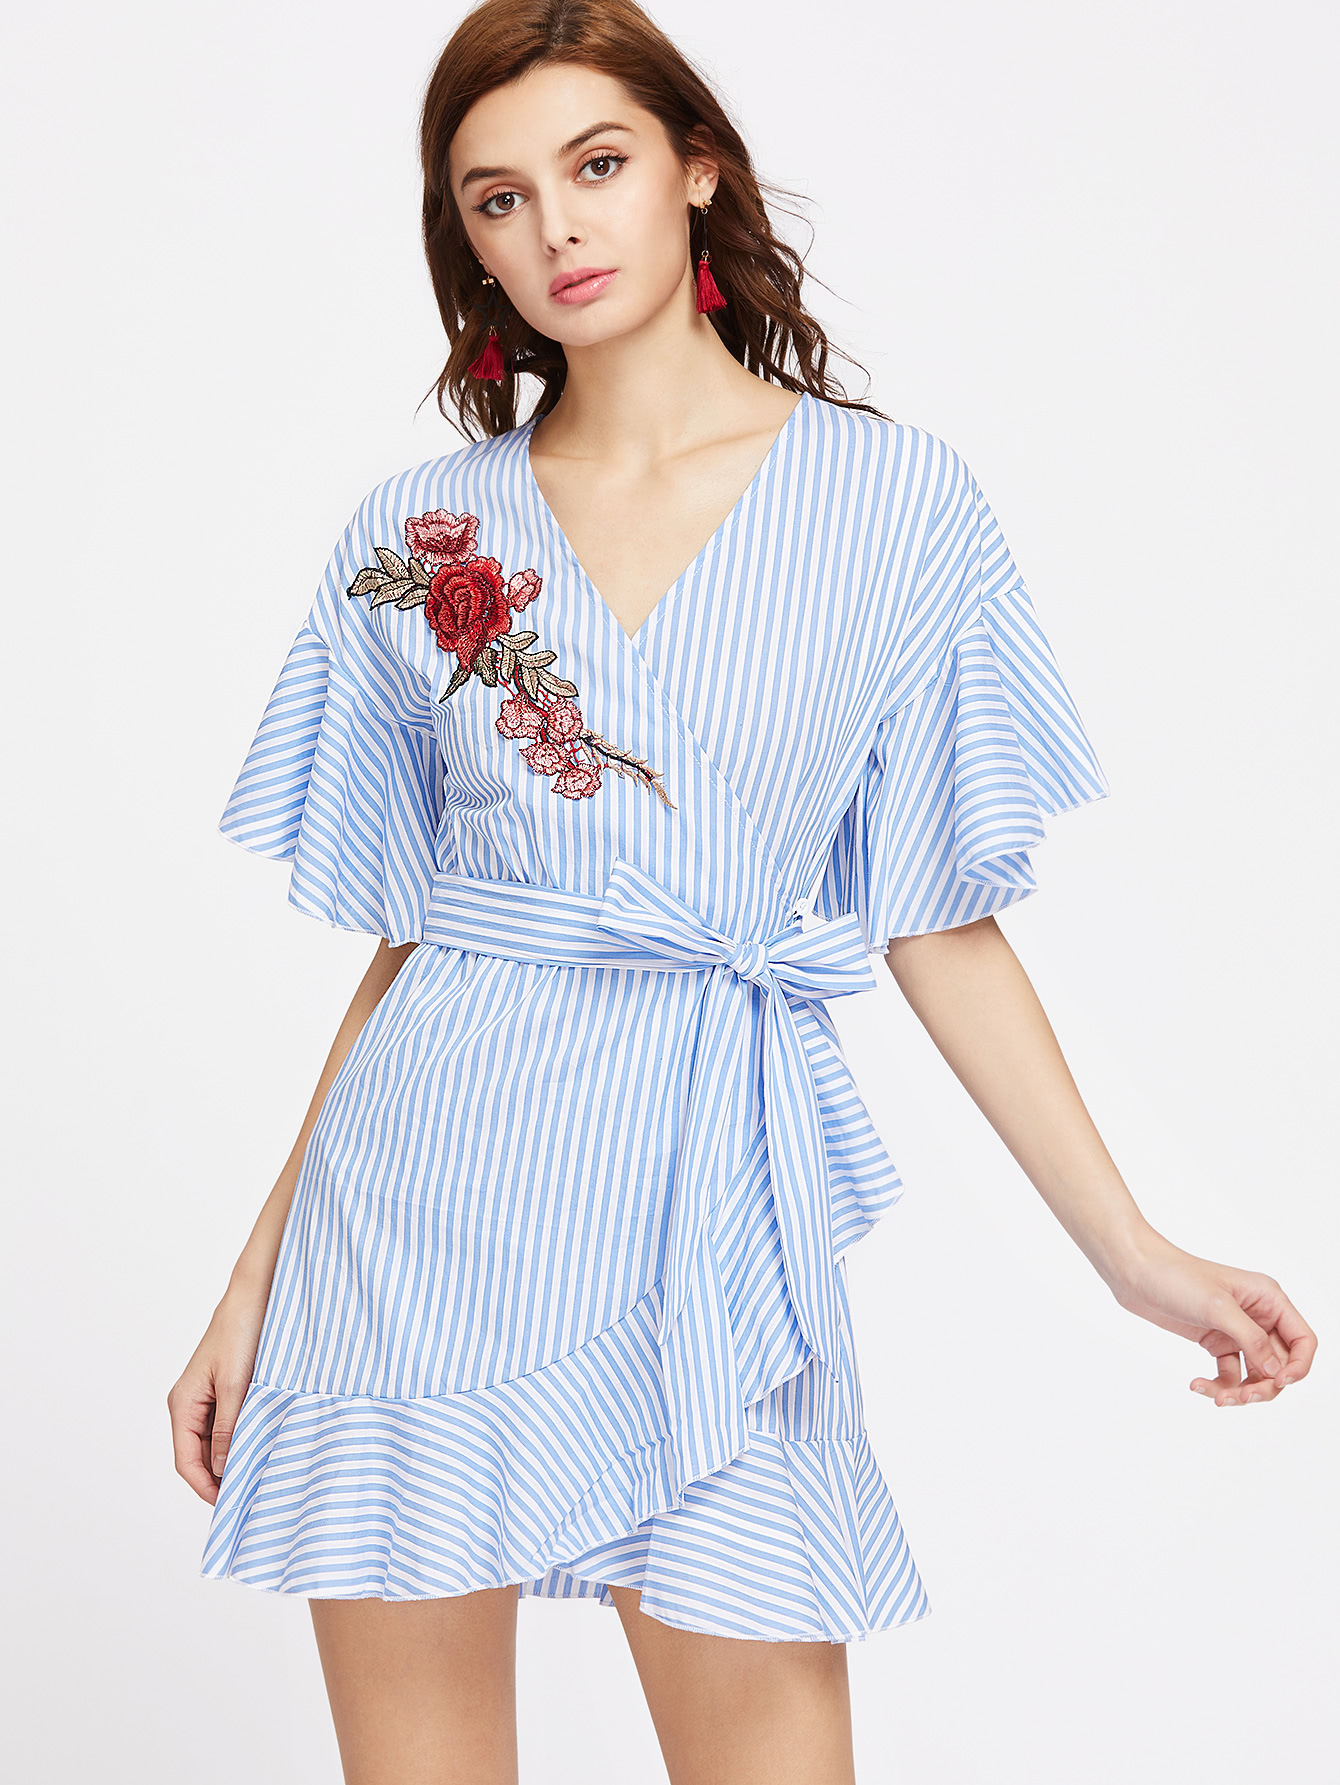 shein-must-have-ruffle-dress-allbuenothings